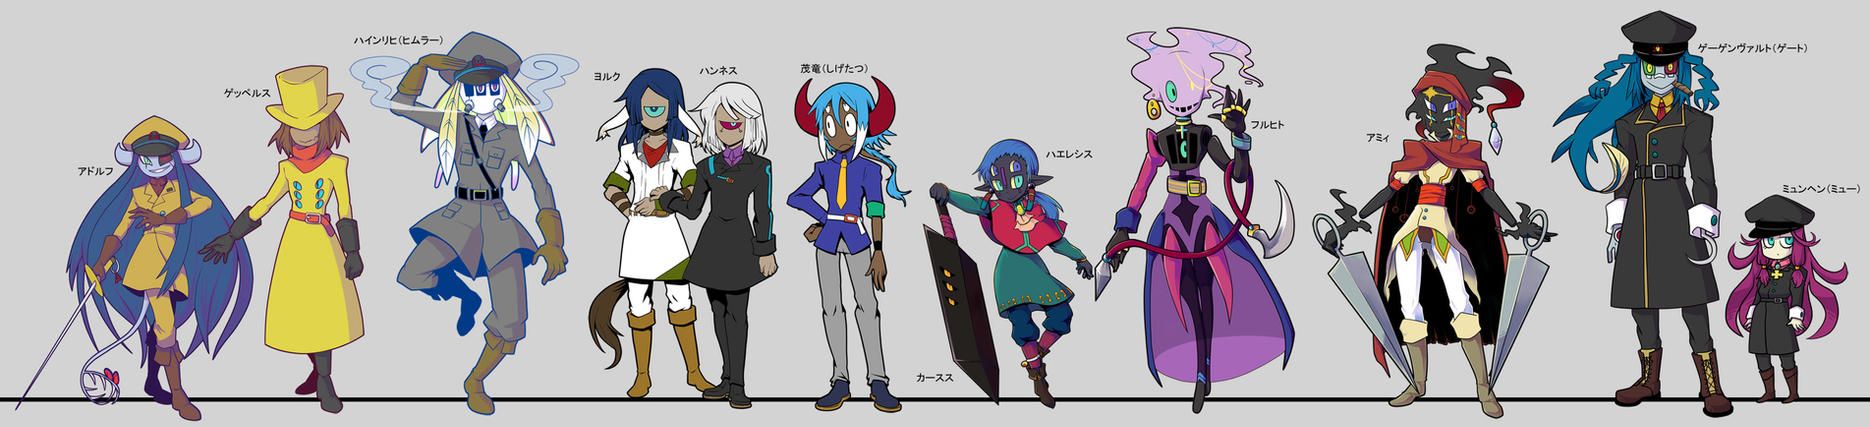 new characters by TOUSEI